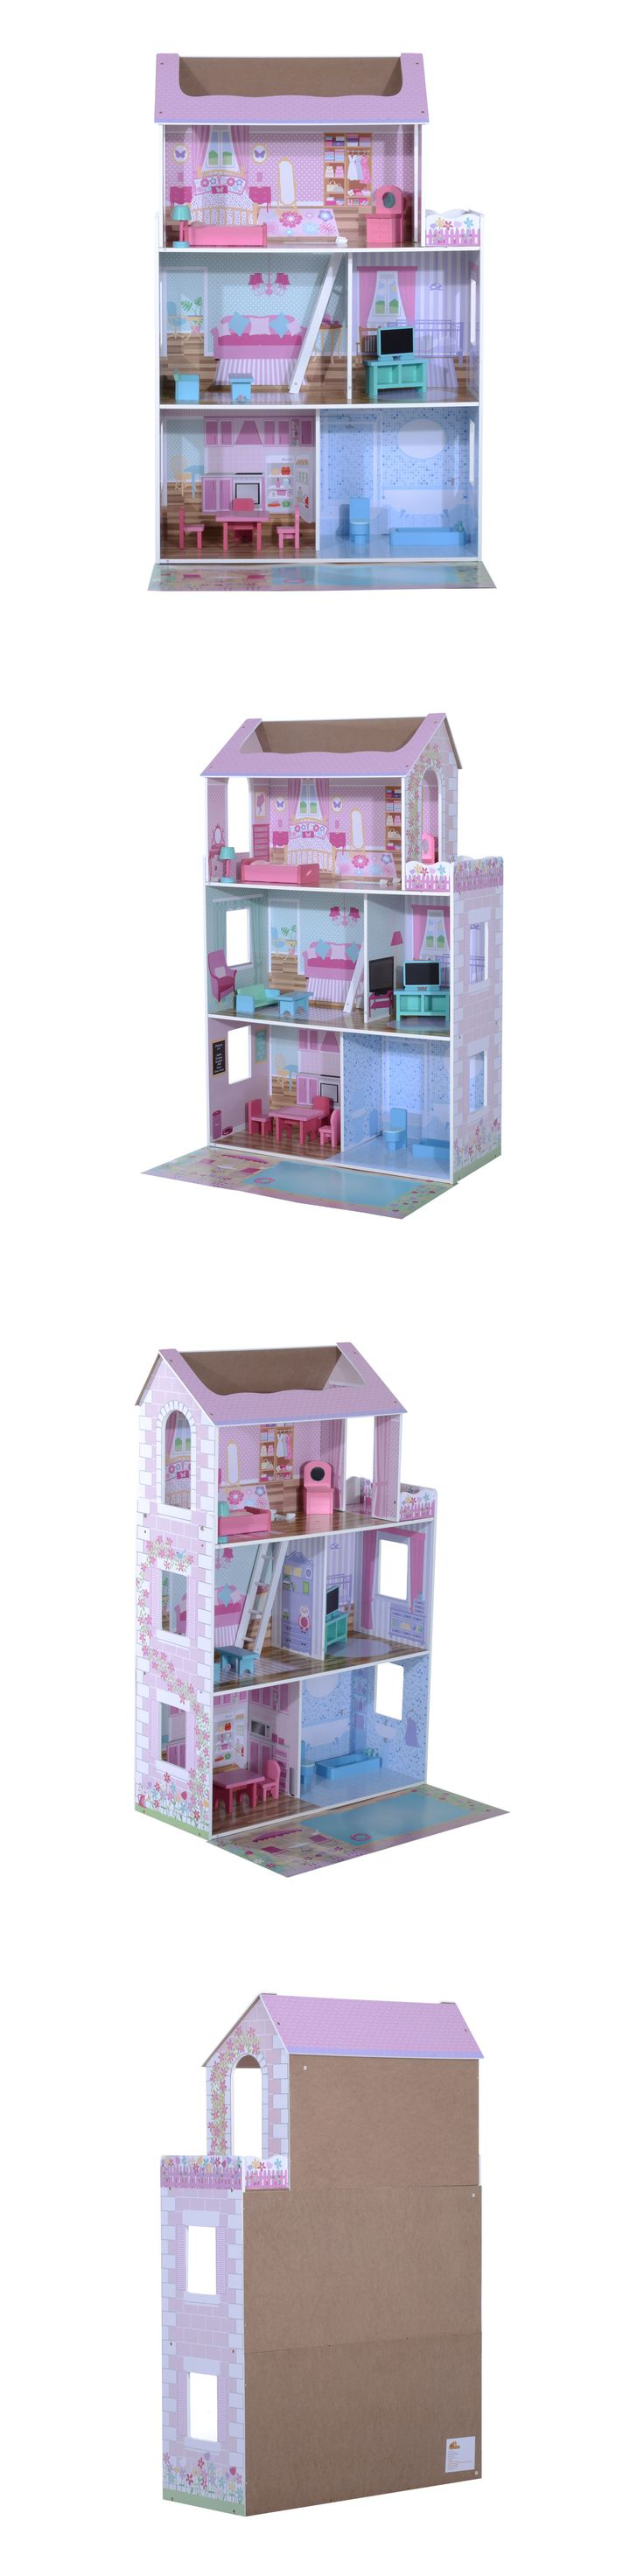 Wooden and Handcrafted Toys 1197: Wooden Toy Dollhouse Barbie Dreamhouse Doll House Cottage With Furniture -> BUY IT NOW ONLY: $54.99 on eBay!